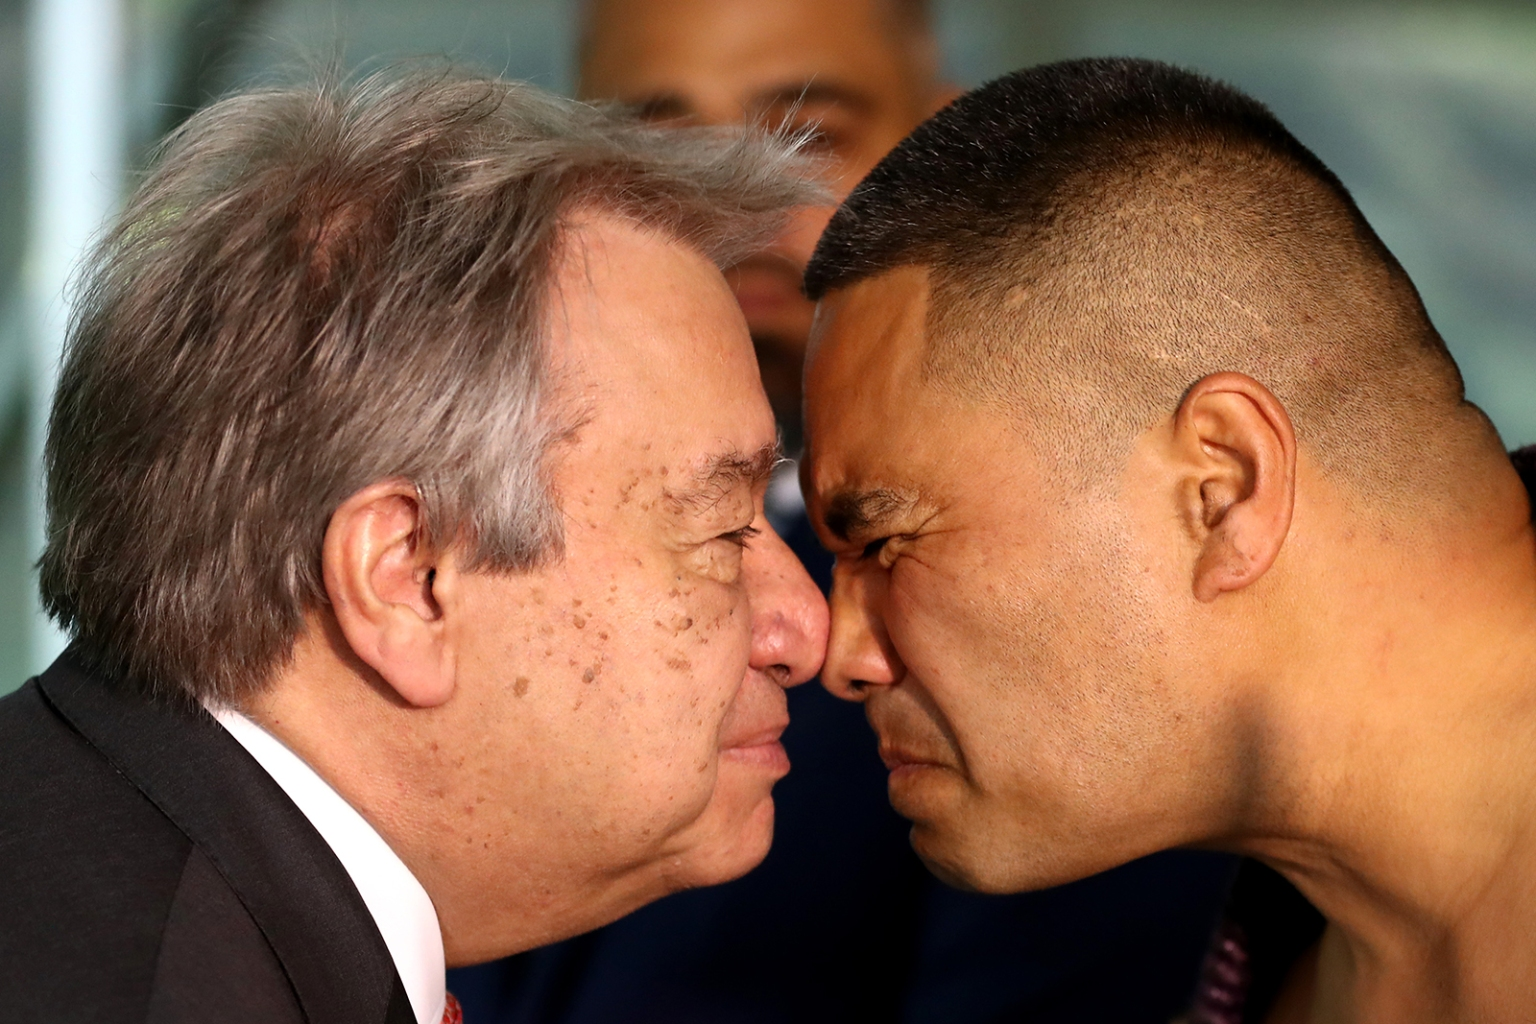 United Nations Secretary-General Antonio Guterres receives a hongi greeting from a Maori warrior at Government House on in Auckland, New Zealand on May 12. The two-day visit to New Zealand was part of a broader visit to the Pacific region and is Guterres' first visit as UN Secretary-General. Hannah Peters/Getty Images